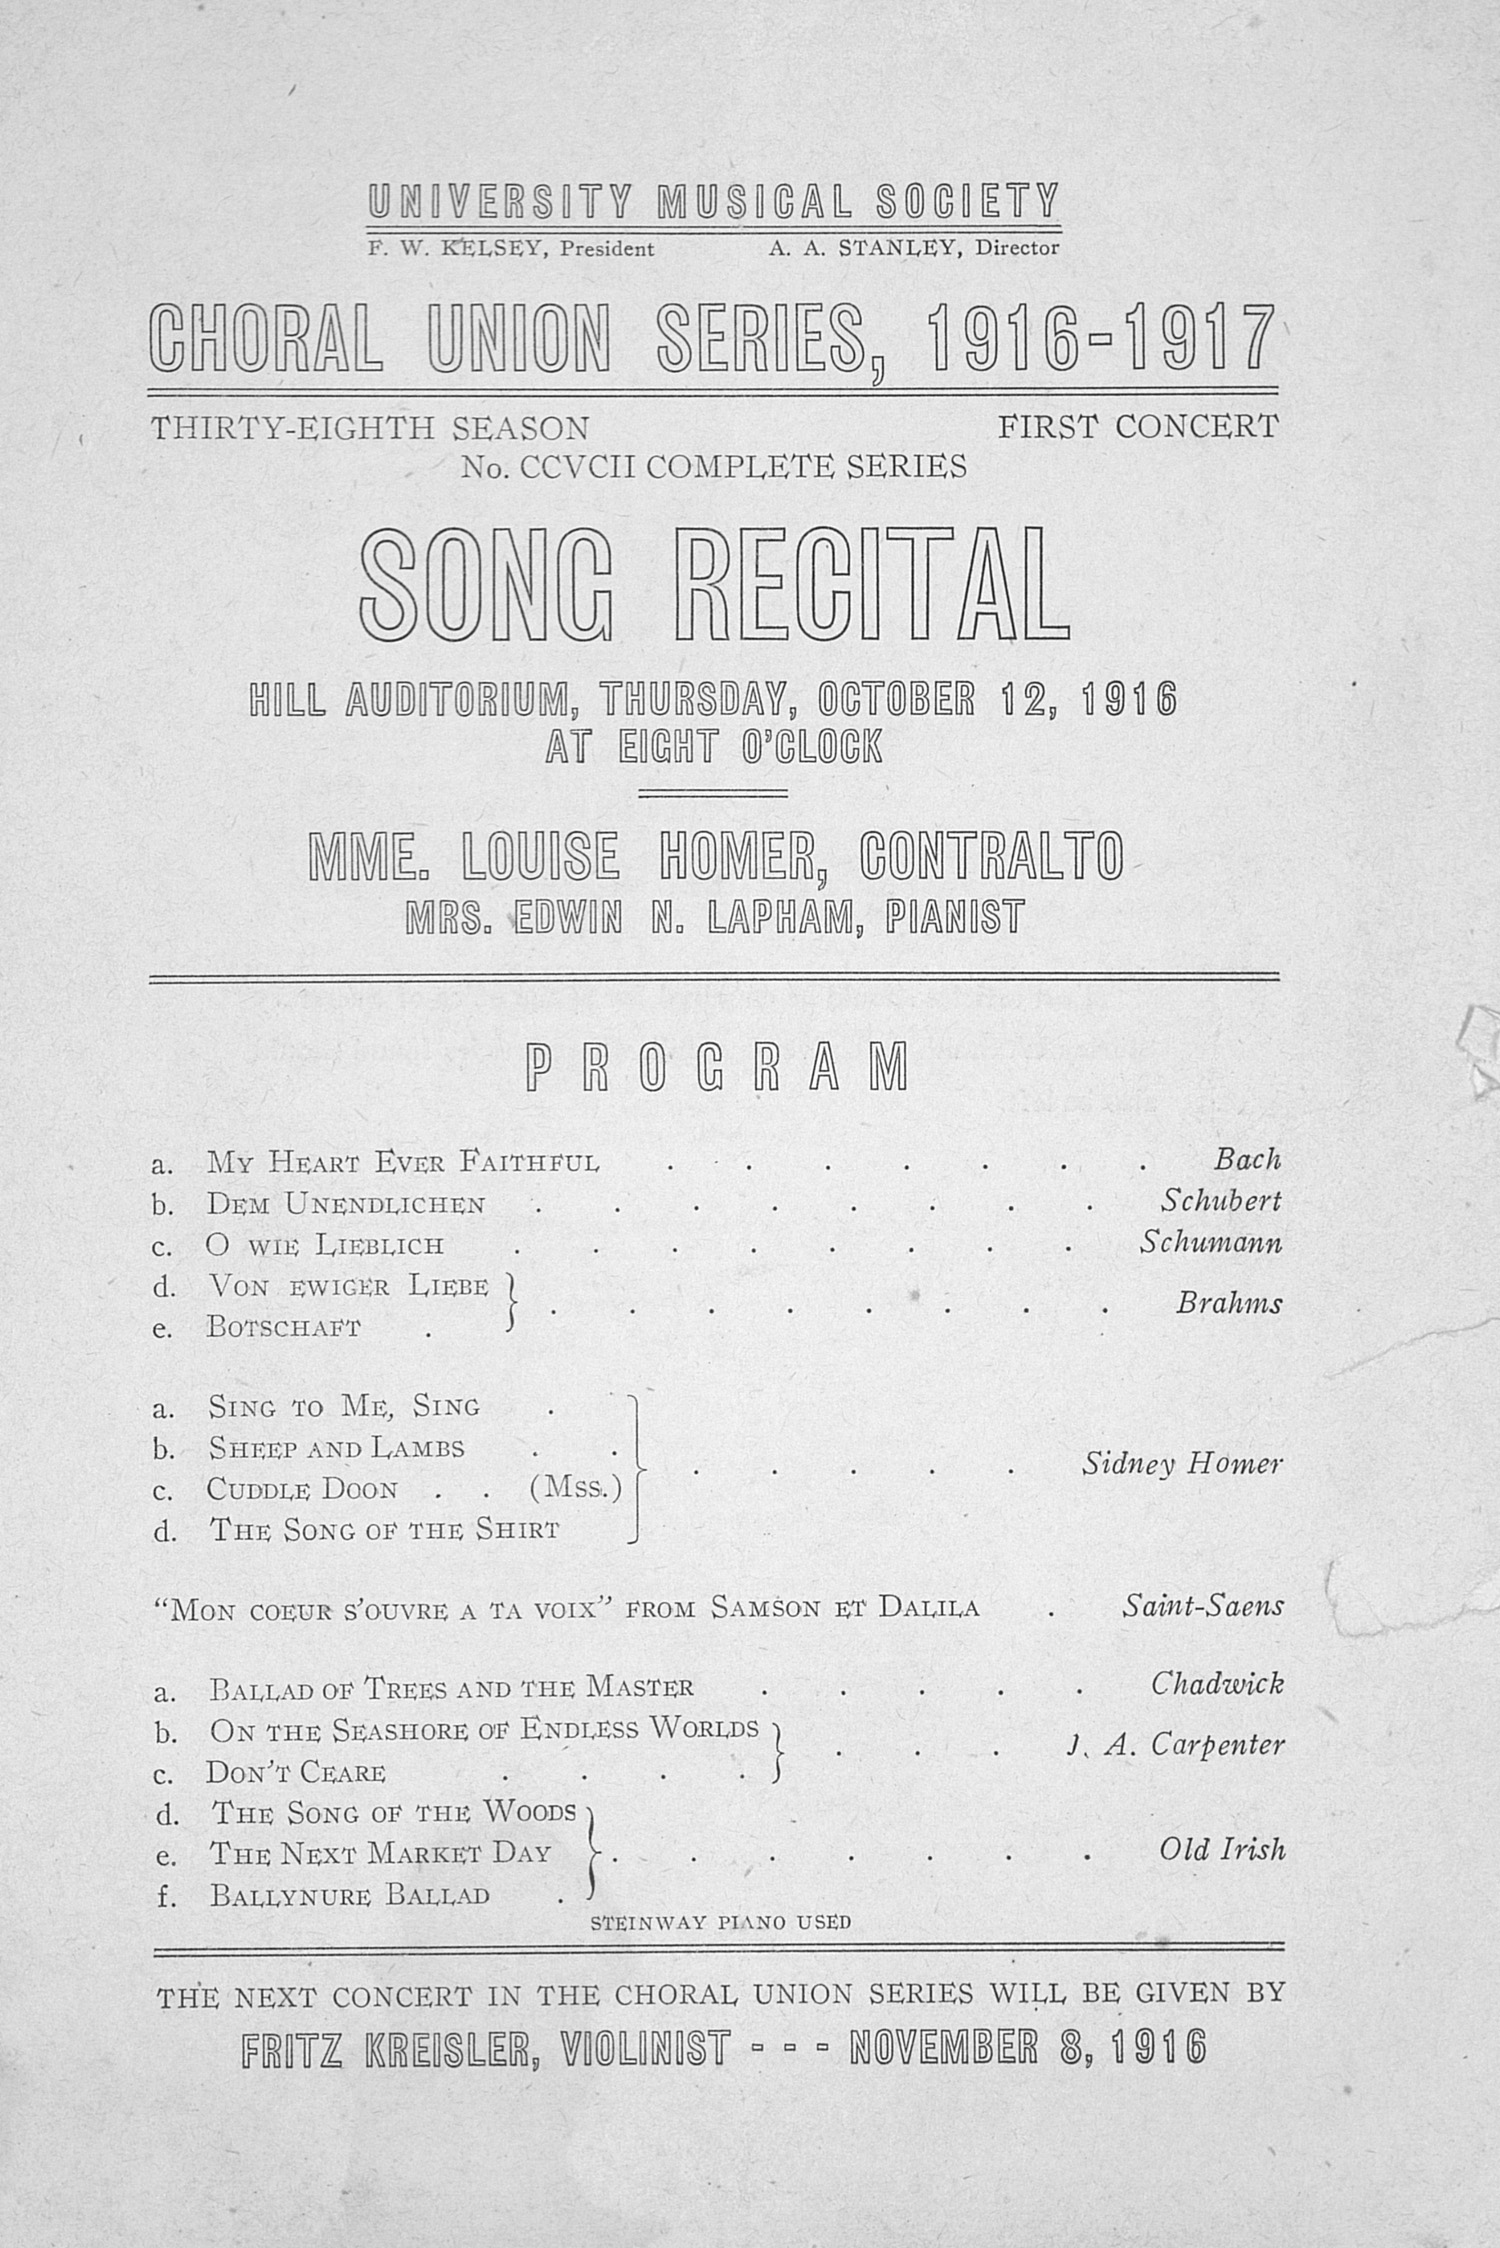 UMS Concert Program, October 12, 1916: Choral Union Series -- Mme. Louise Homer image